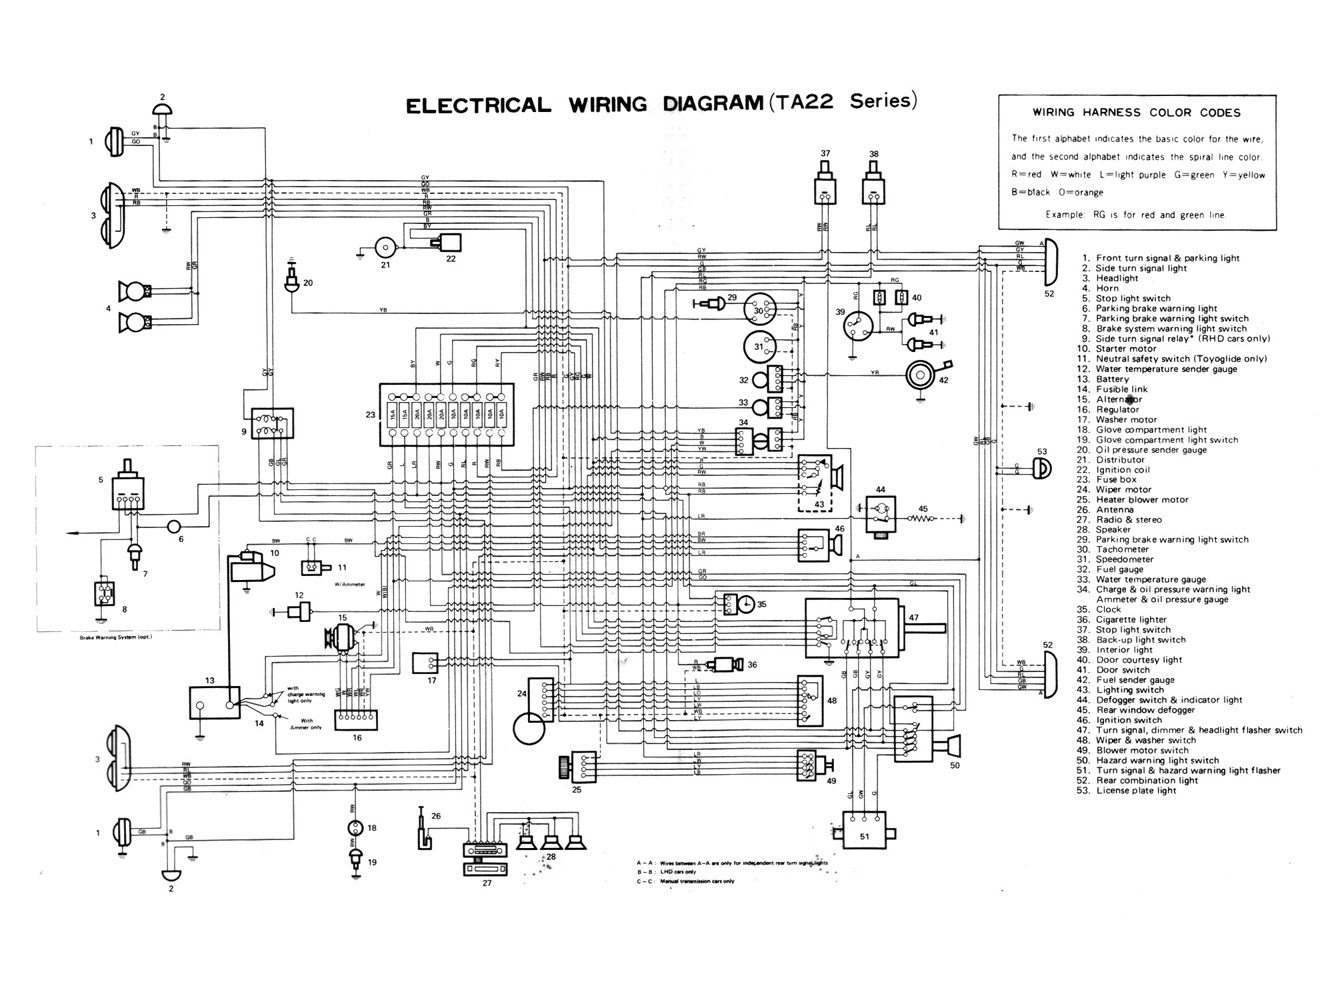 09 24 Electrical Wiring Diagram (TA22 Series) toyota celica service manual chassis 1971 page 09 24 (100dpi toyota celica wiring diagram at fashall.co